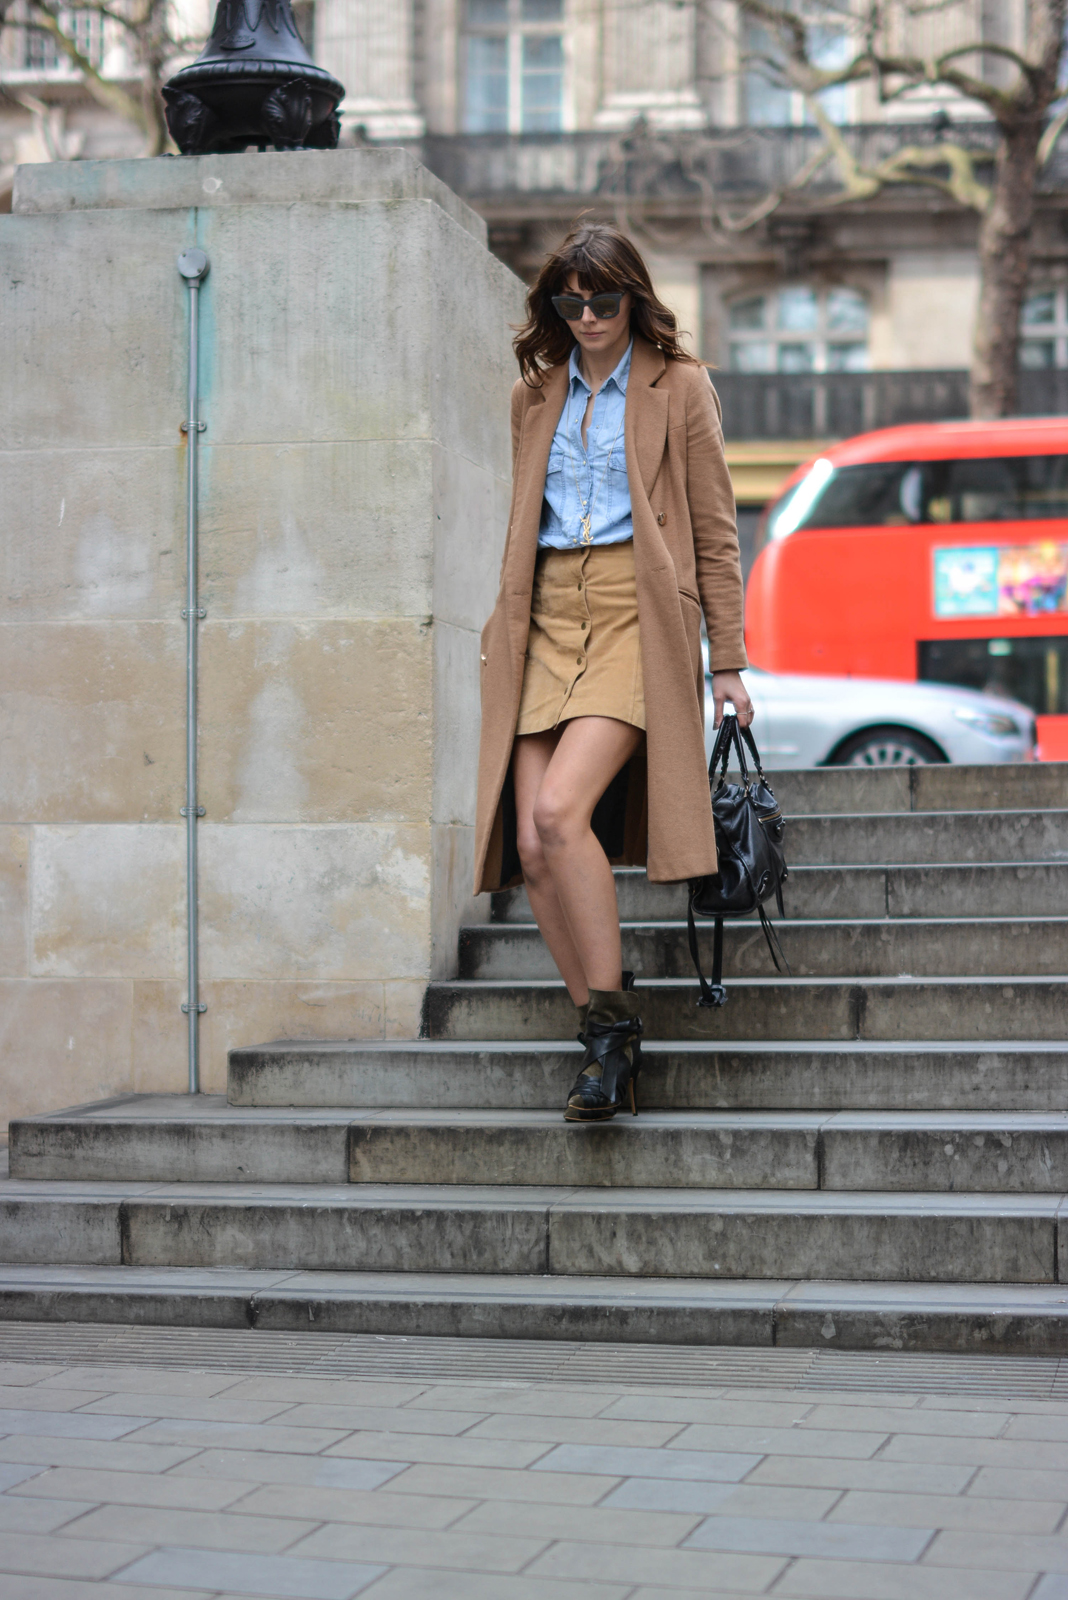 EJSTYLE - Emma Hill, Stella McCartney Sunglasses, denim shirt, camel coat, suede popper skirt miss selfridge, 70s style, Isabel Marant boots, street style, OOTD, fashion blogger